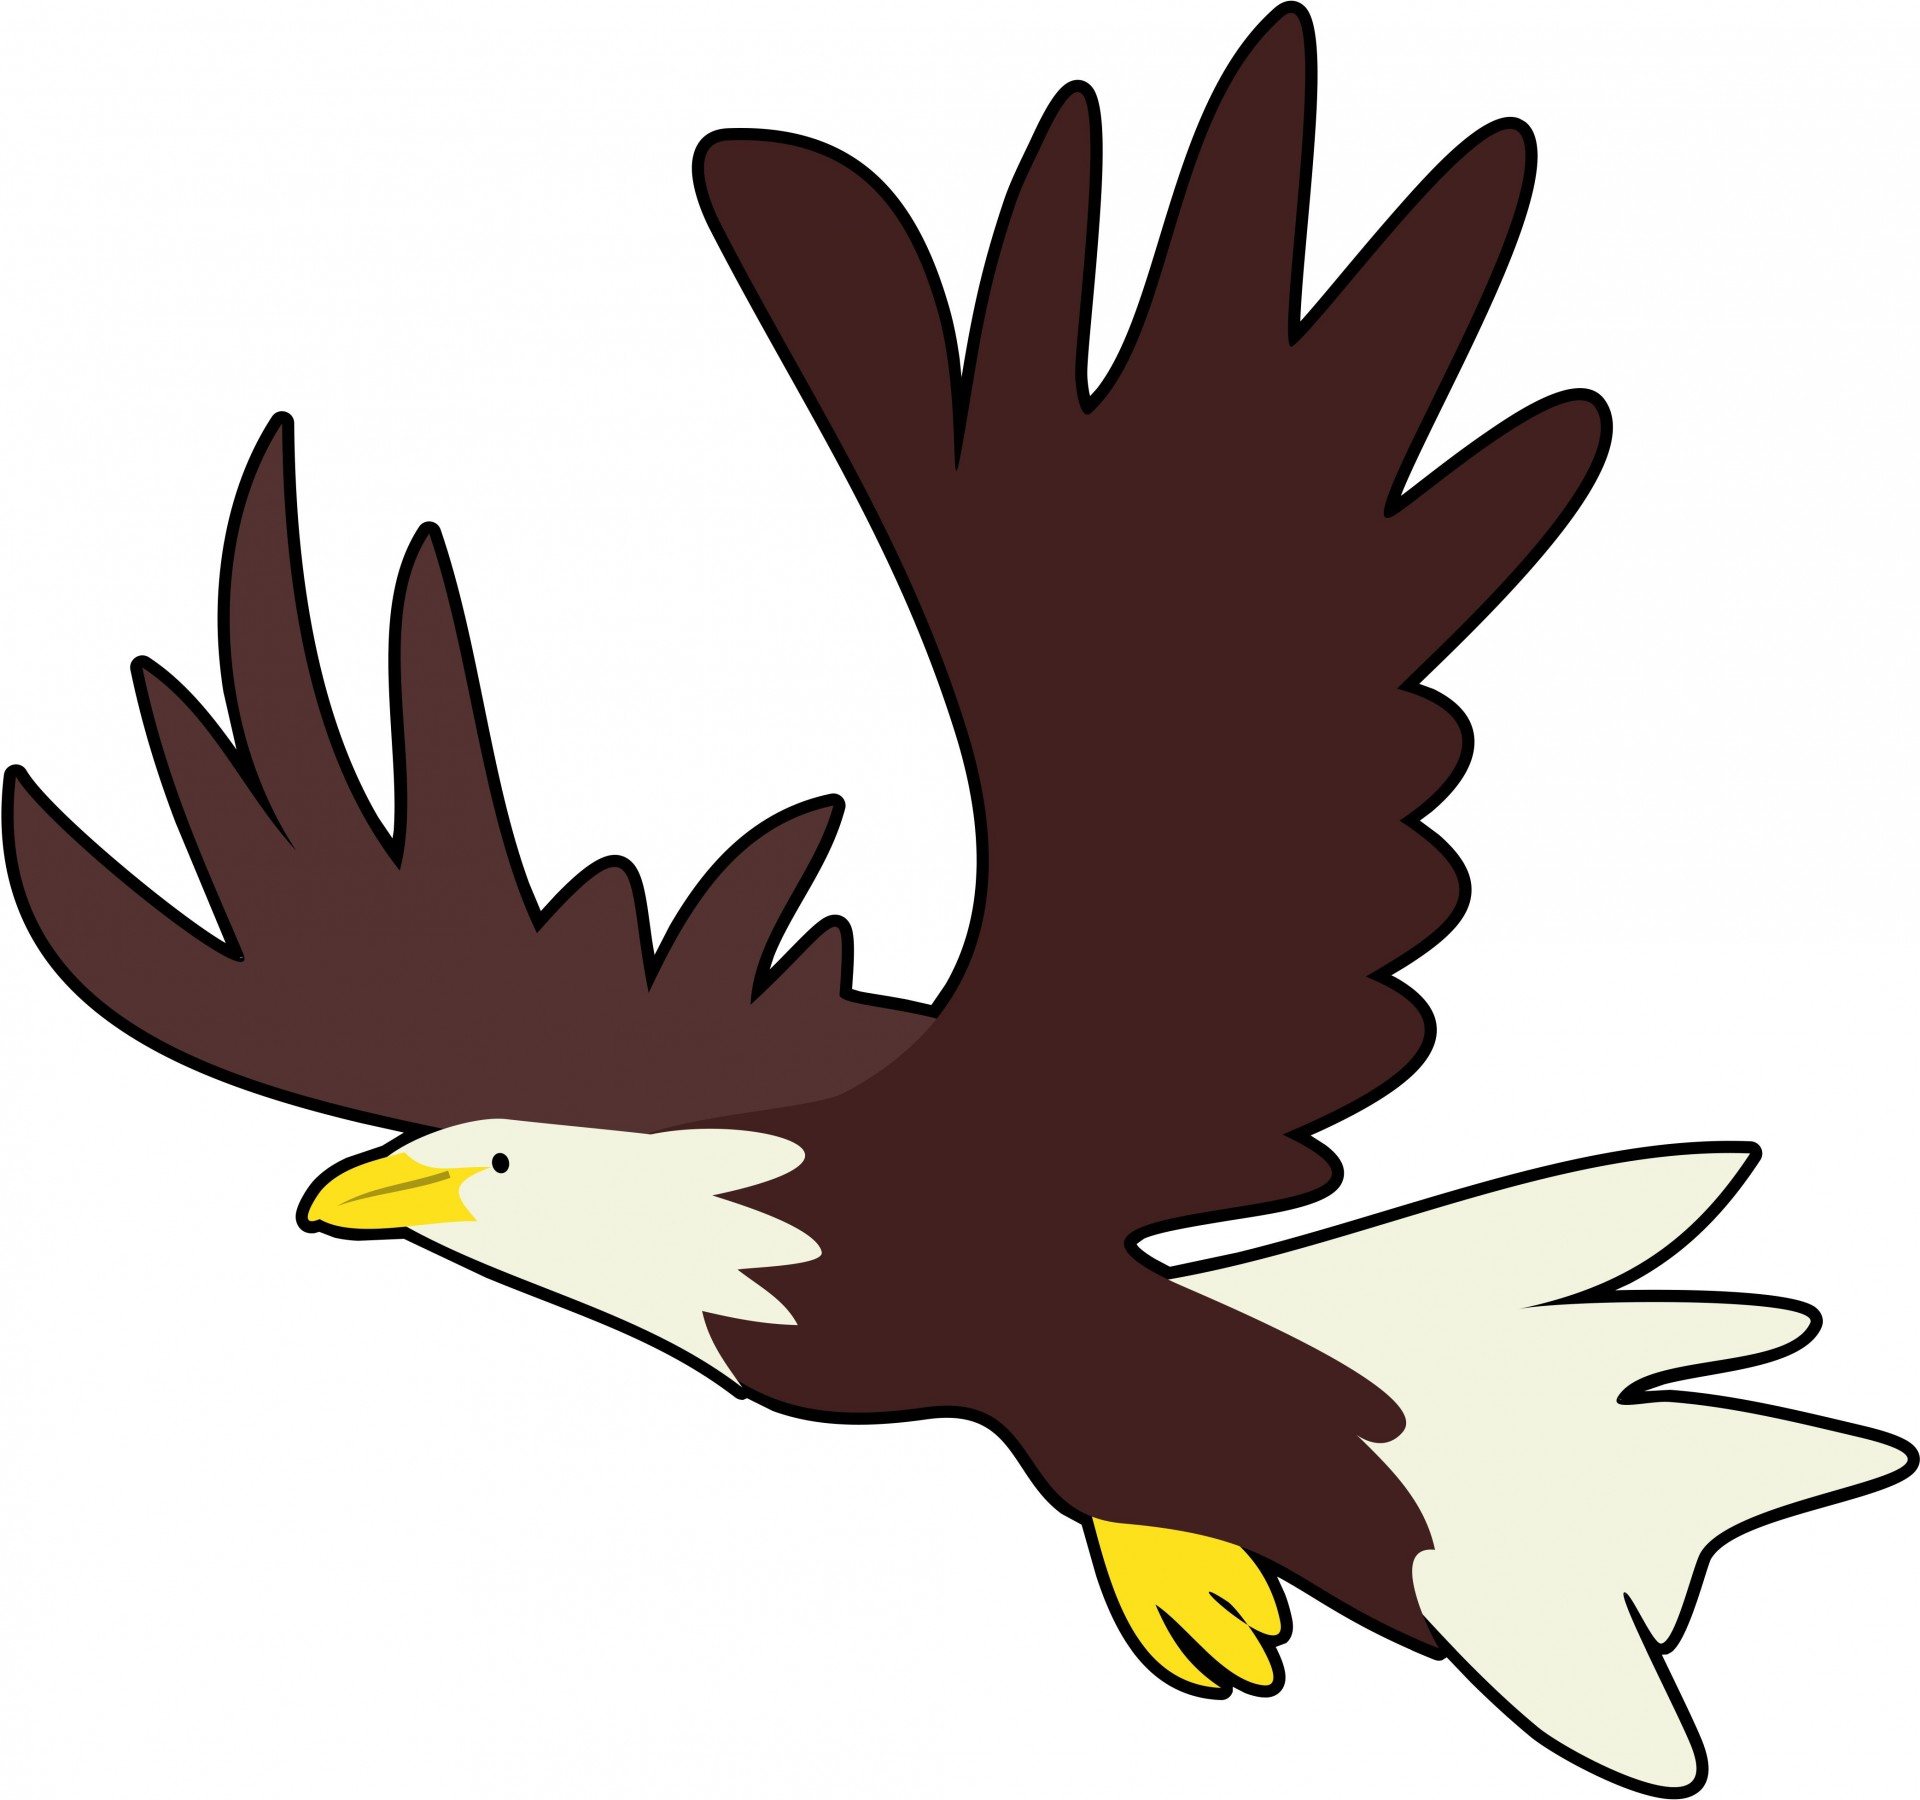 Bald Eagle clipart #20, Download drawings